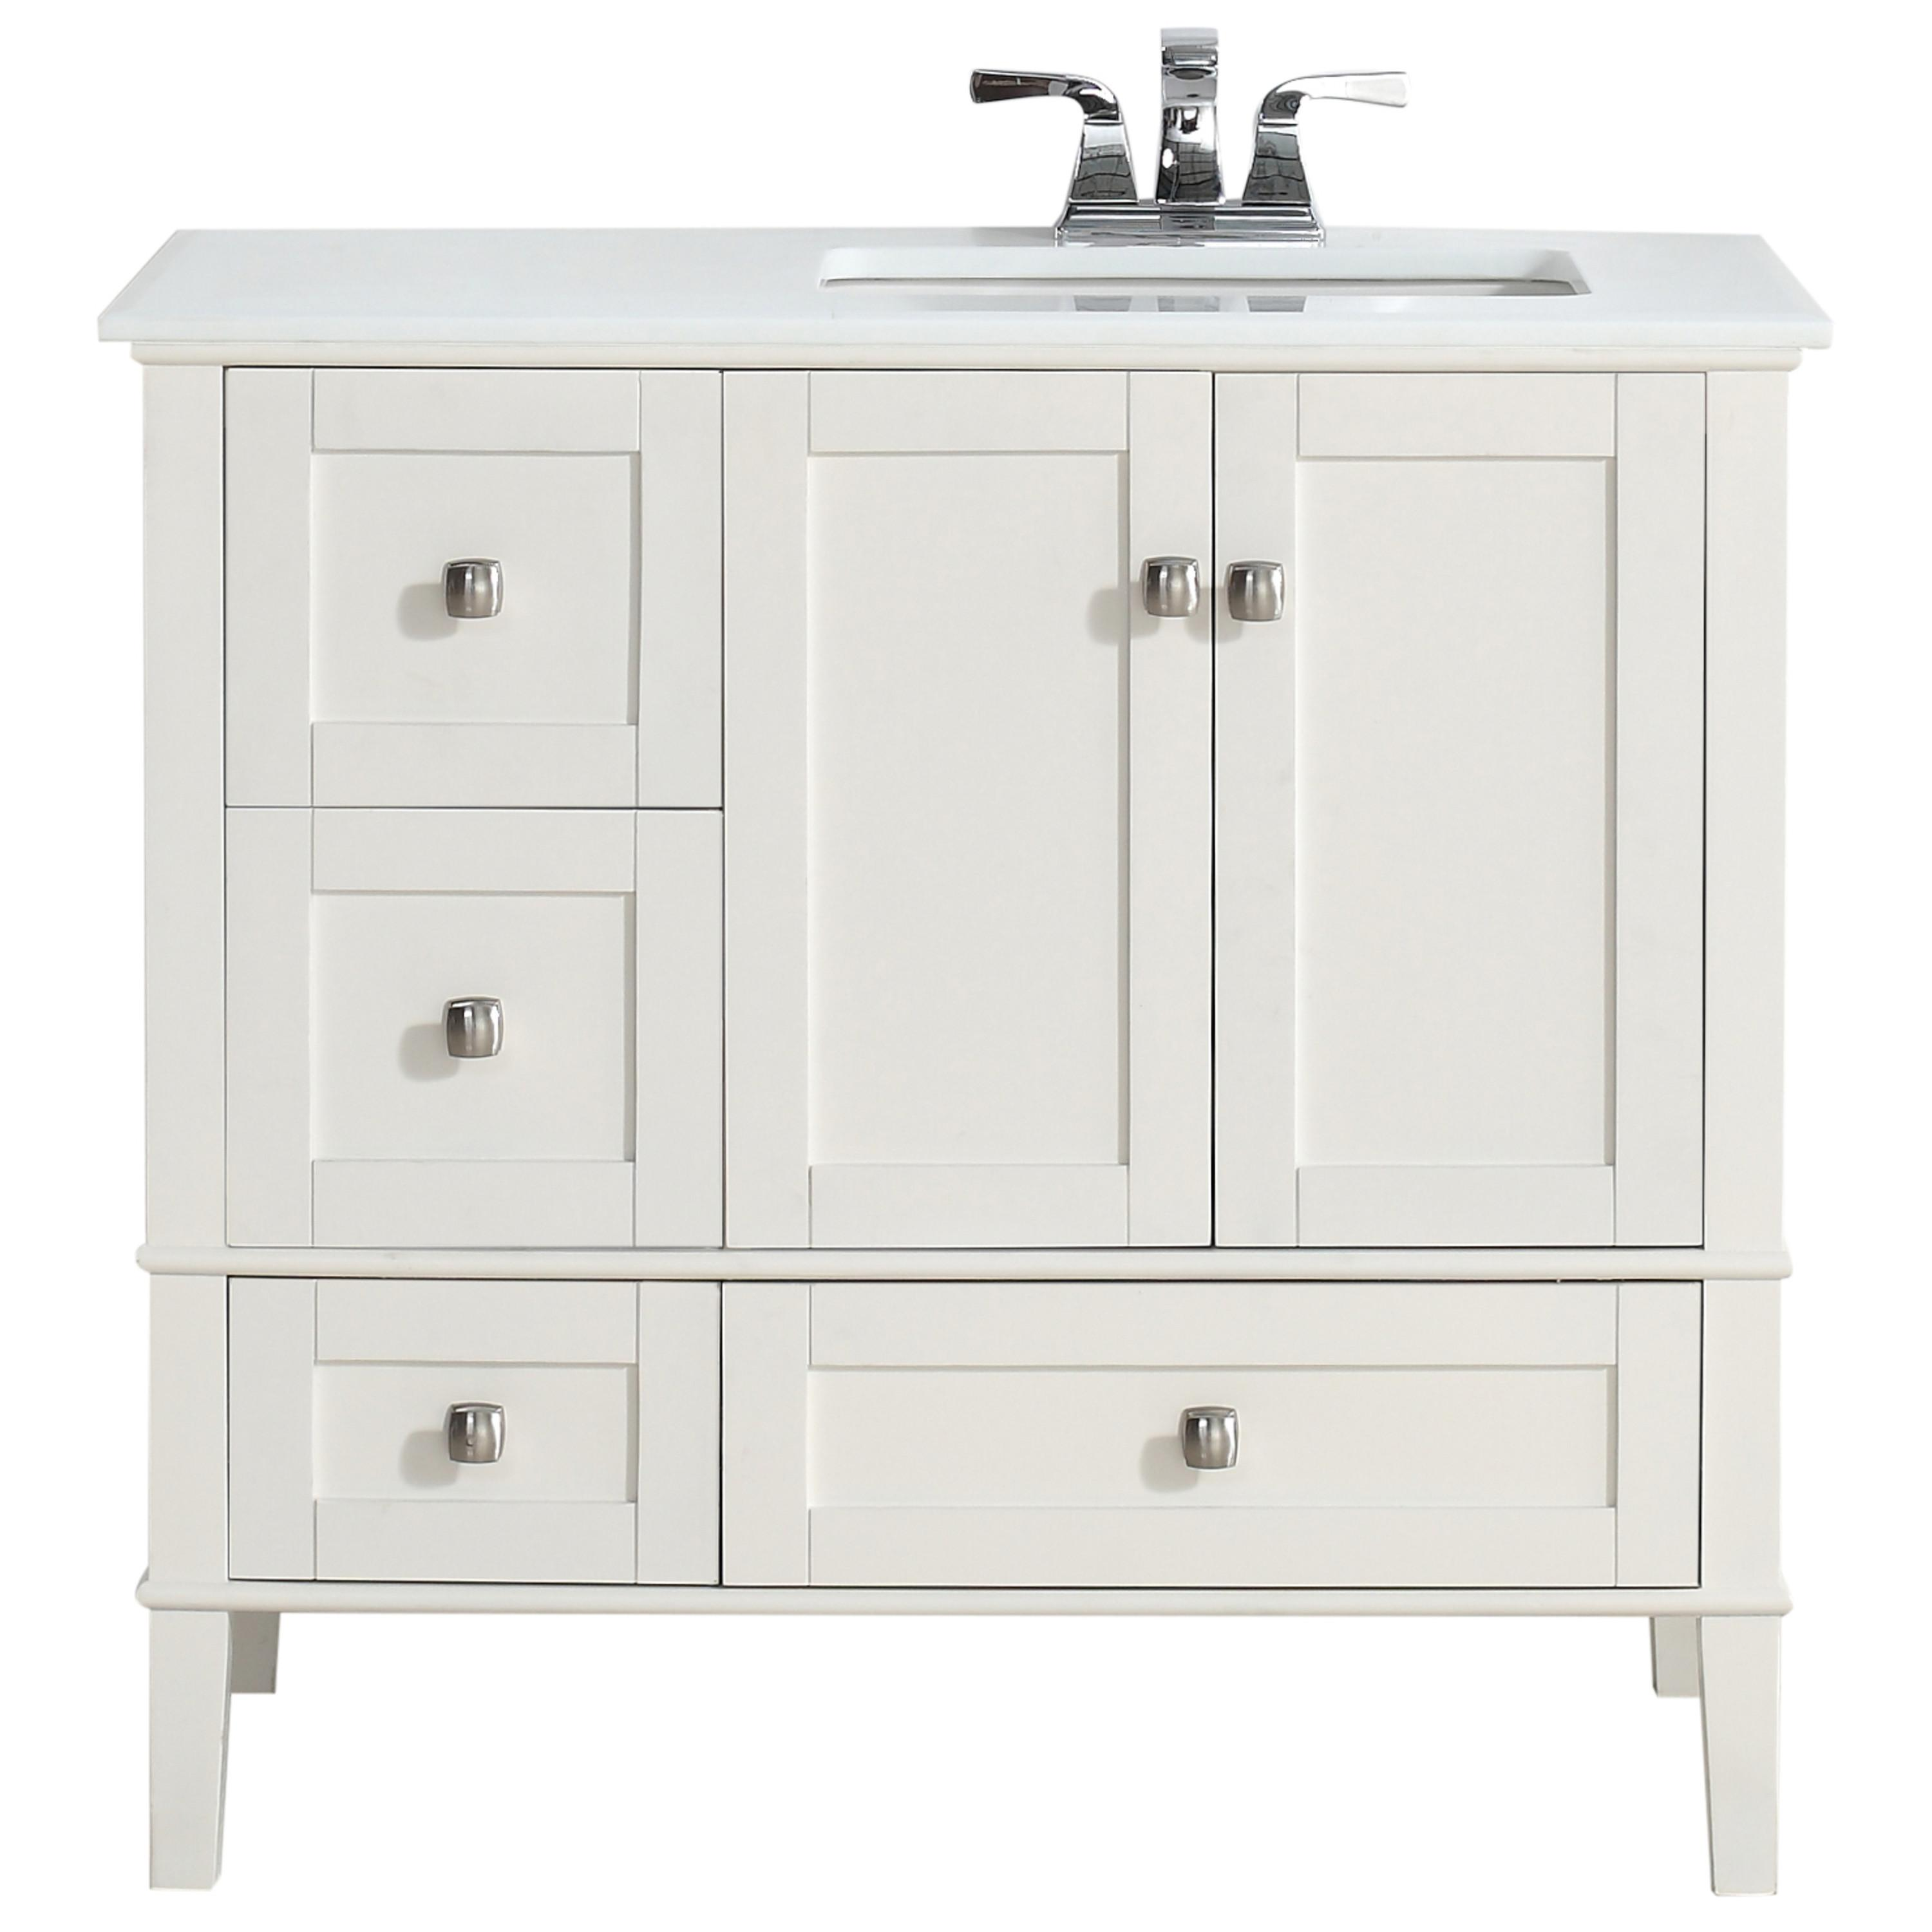 Simpli home chelsea 36 right offset bath vanity with white quartz marble top soft white - Bathroom vanity tops with offset sink design ...